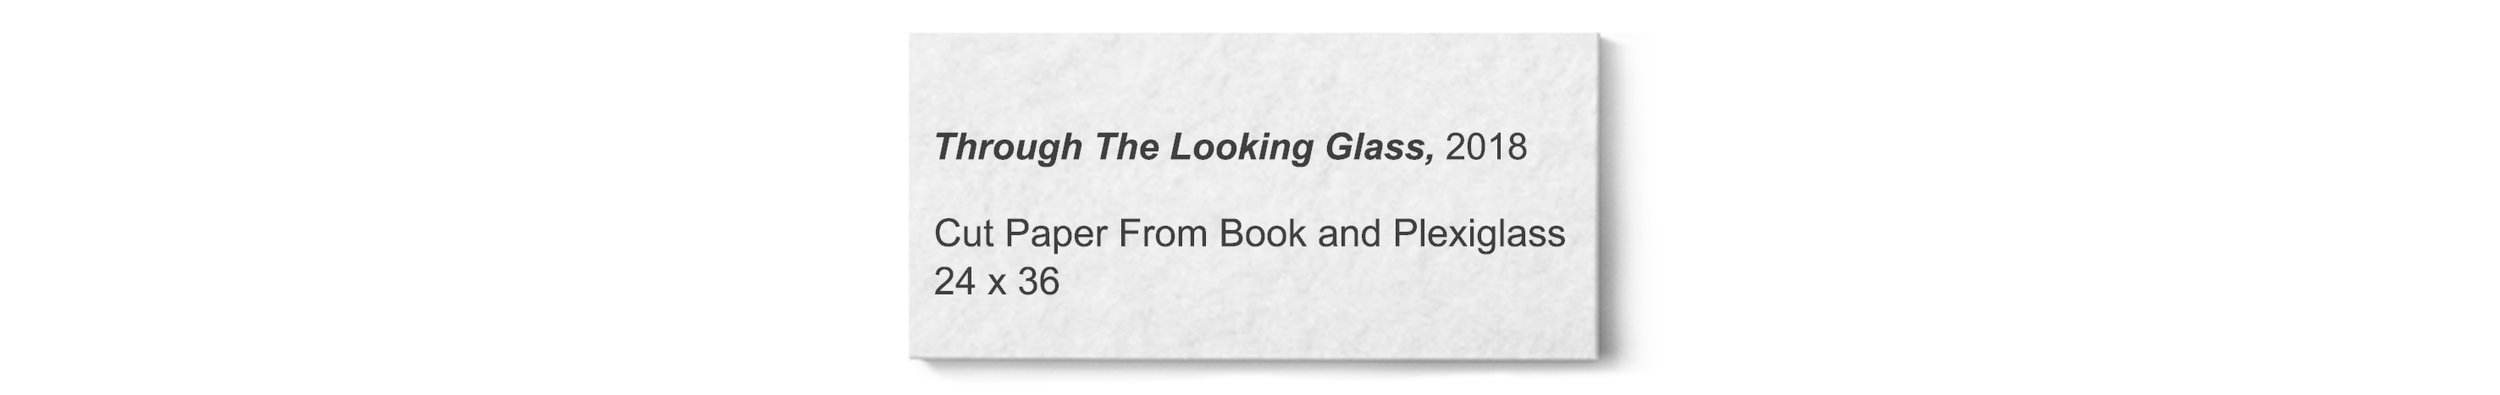 © David Gary Lloyd - Label - Through The Looking Glass.jpg